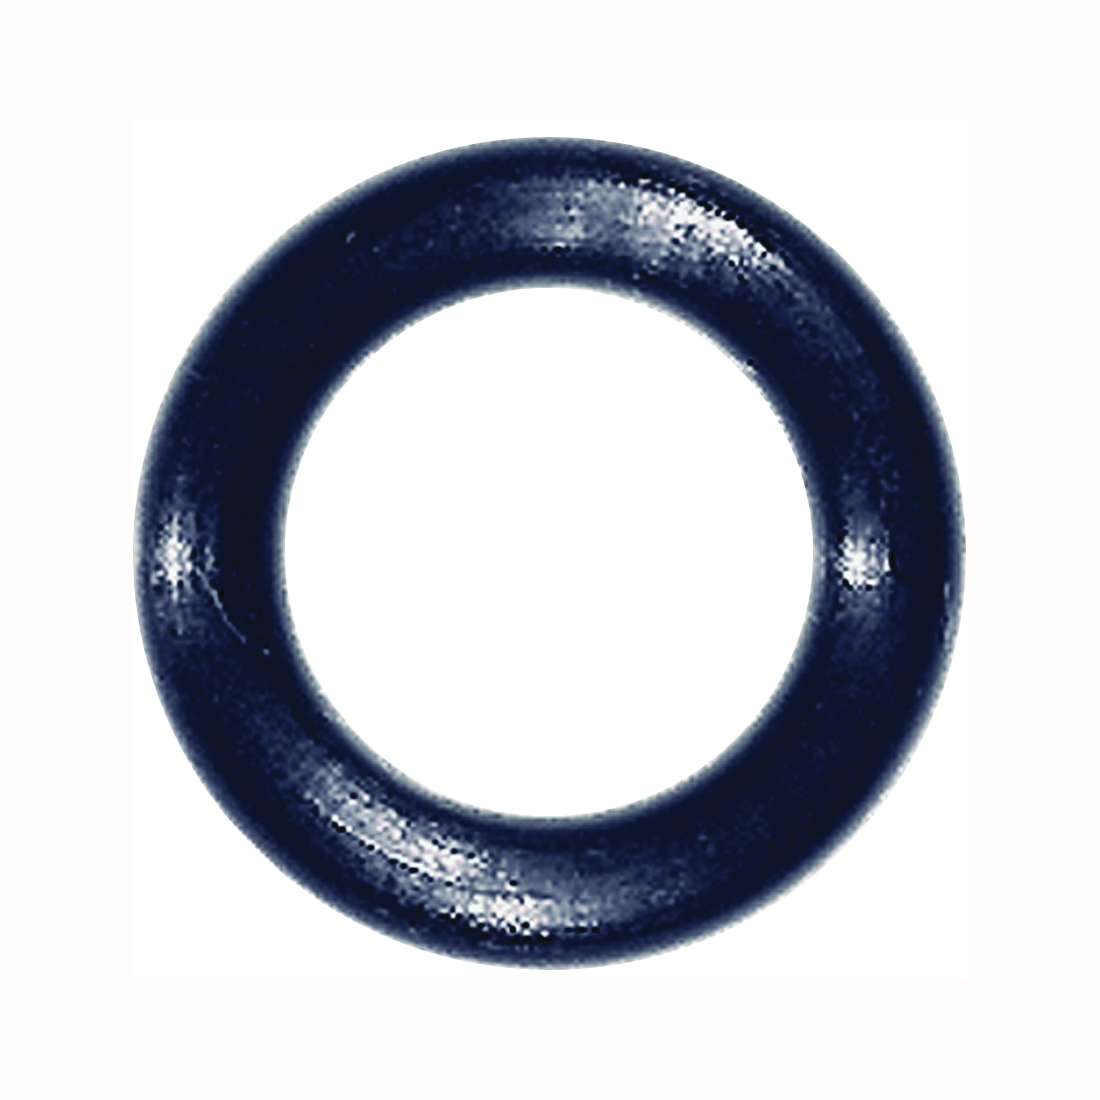 Picture of Danco 35719B Faucet O-Ring, #74, 3/8 in ID x 39/64 in OD Dia, 7/64 in Thick, Buna-N, For: Streamway Faucets